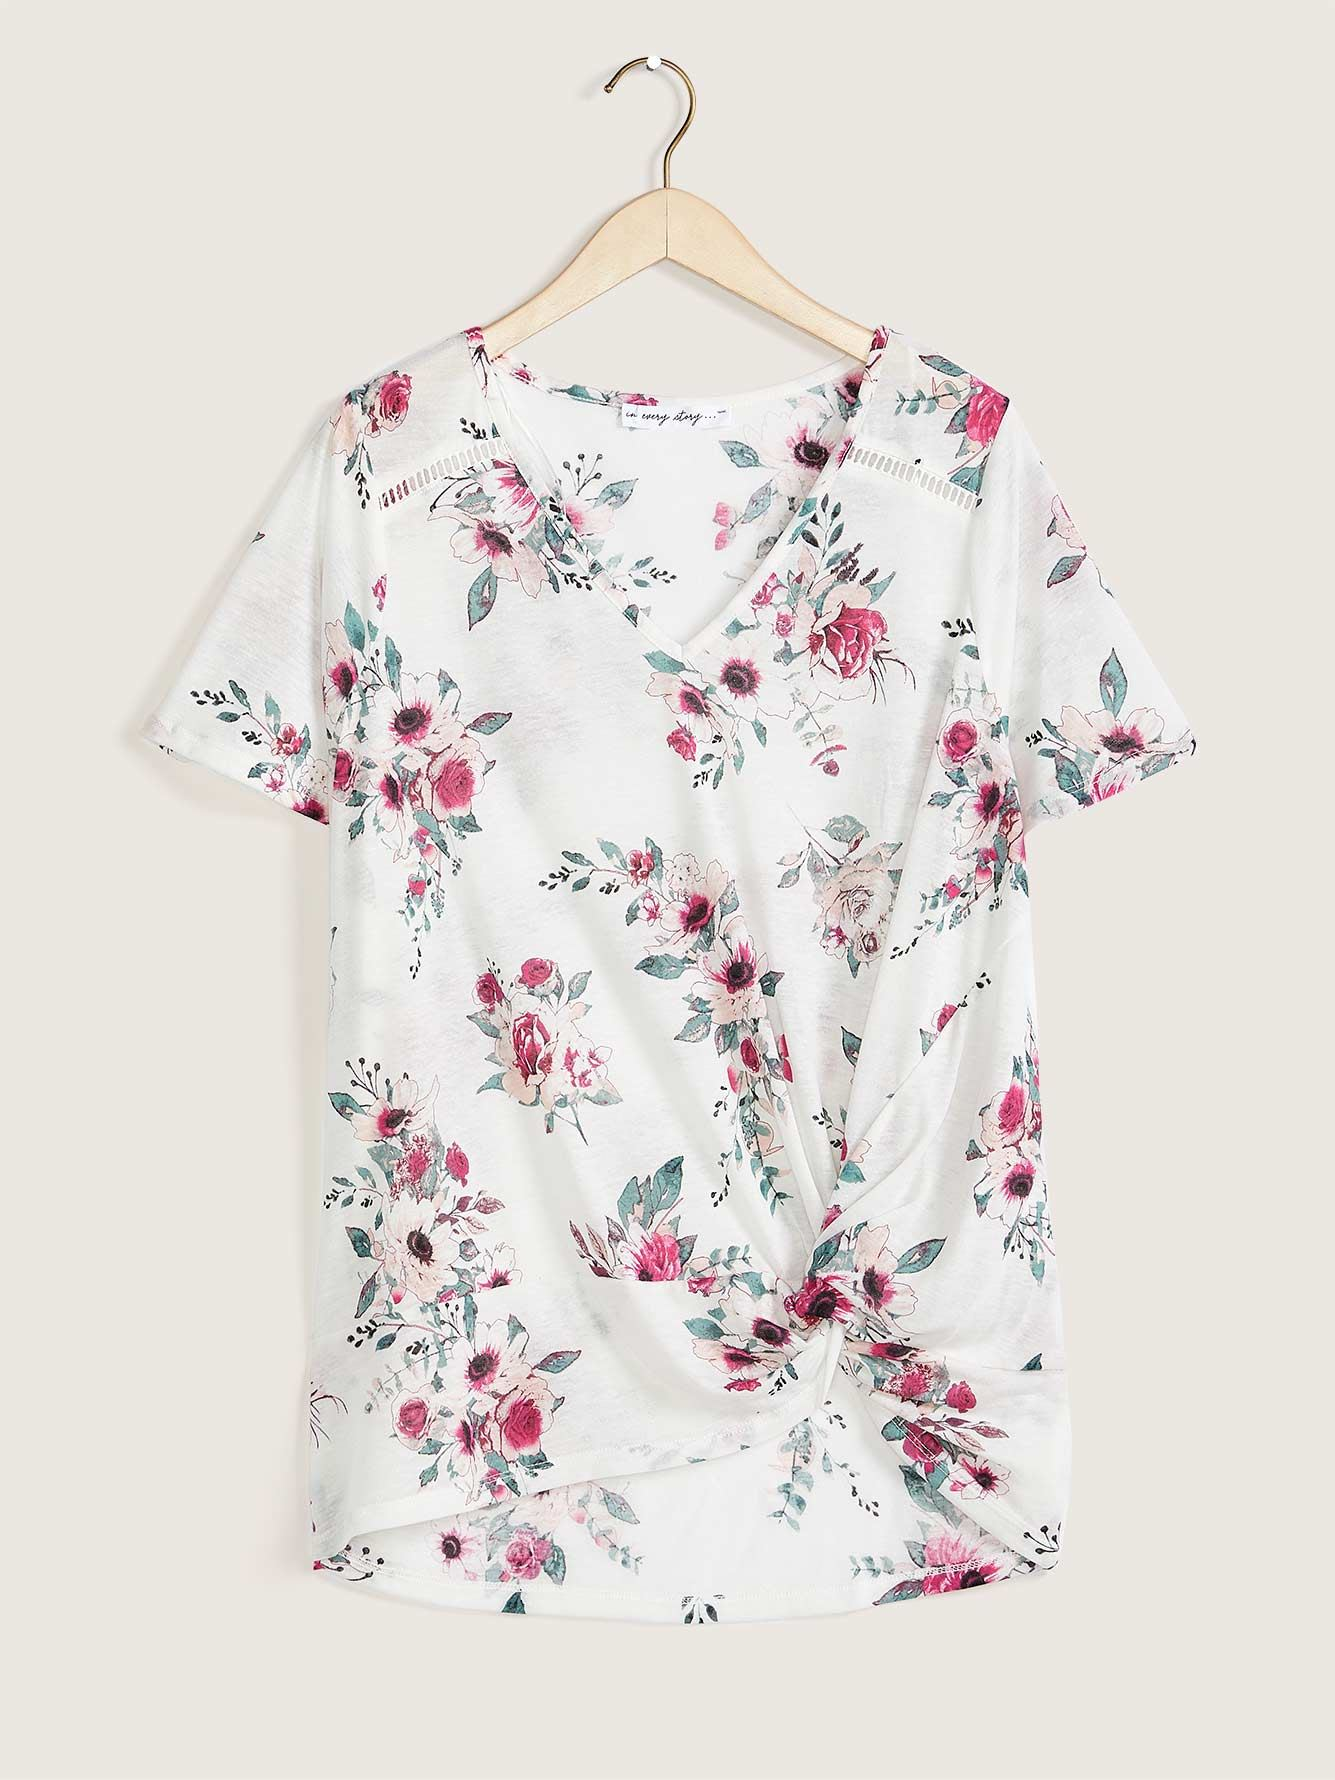 Linen Blend Printed Top With Knot Detail - In Every Story